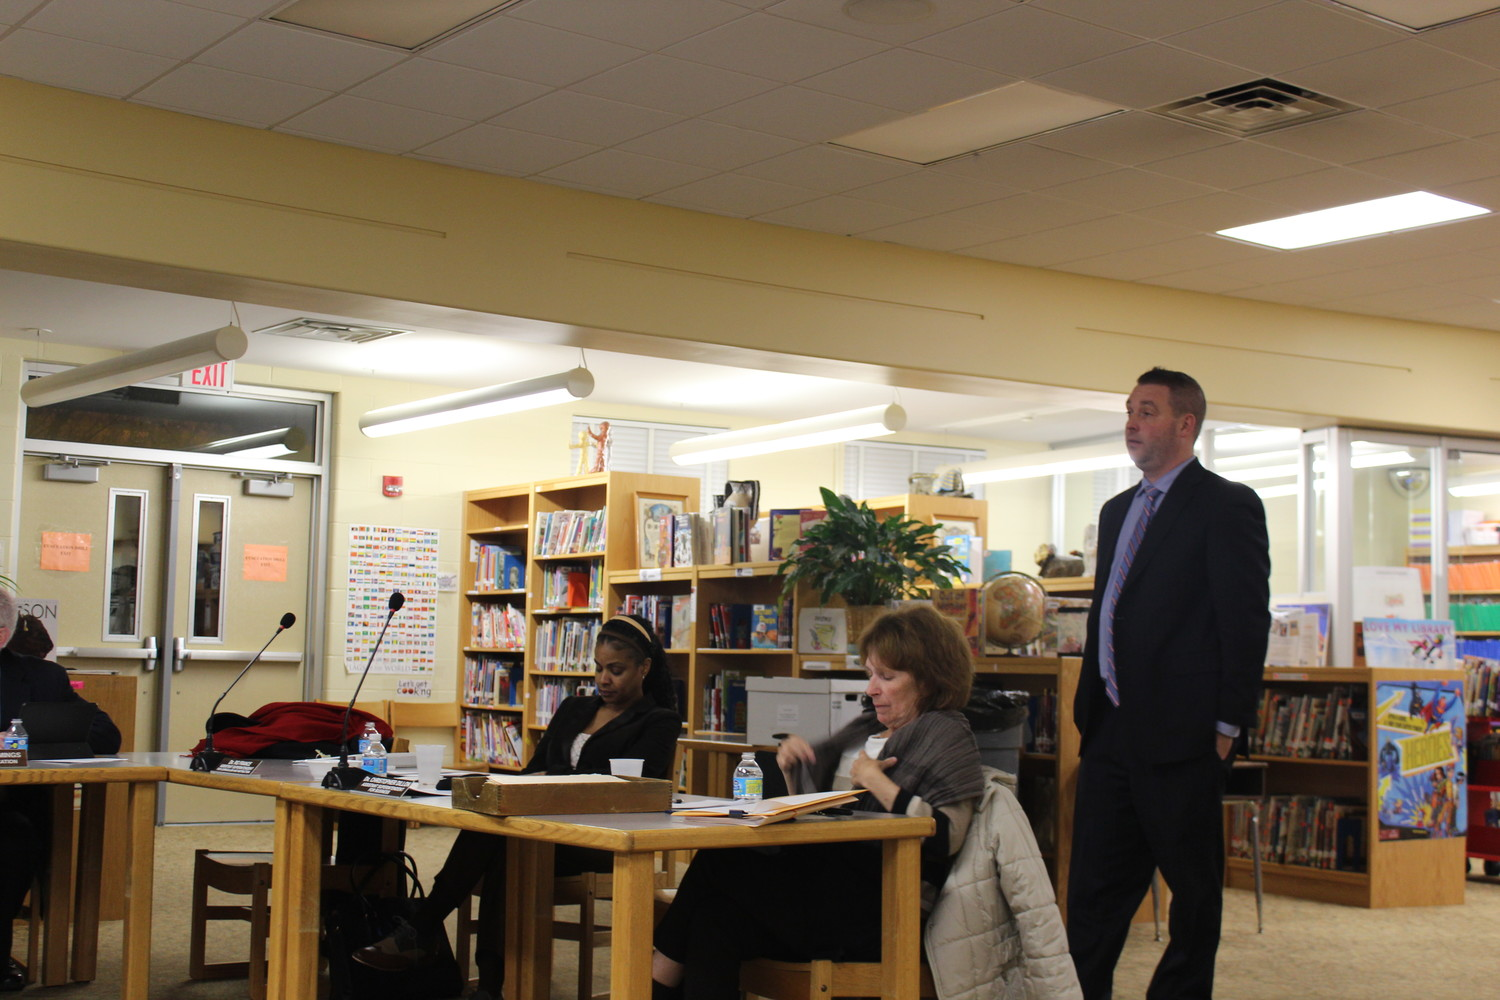 Chris Dillon (right) spoke to residents about the tax levy increase on Feb. 12.